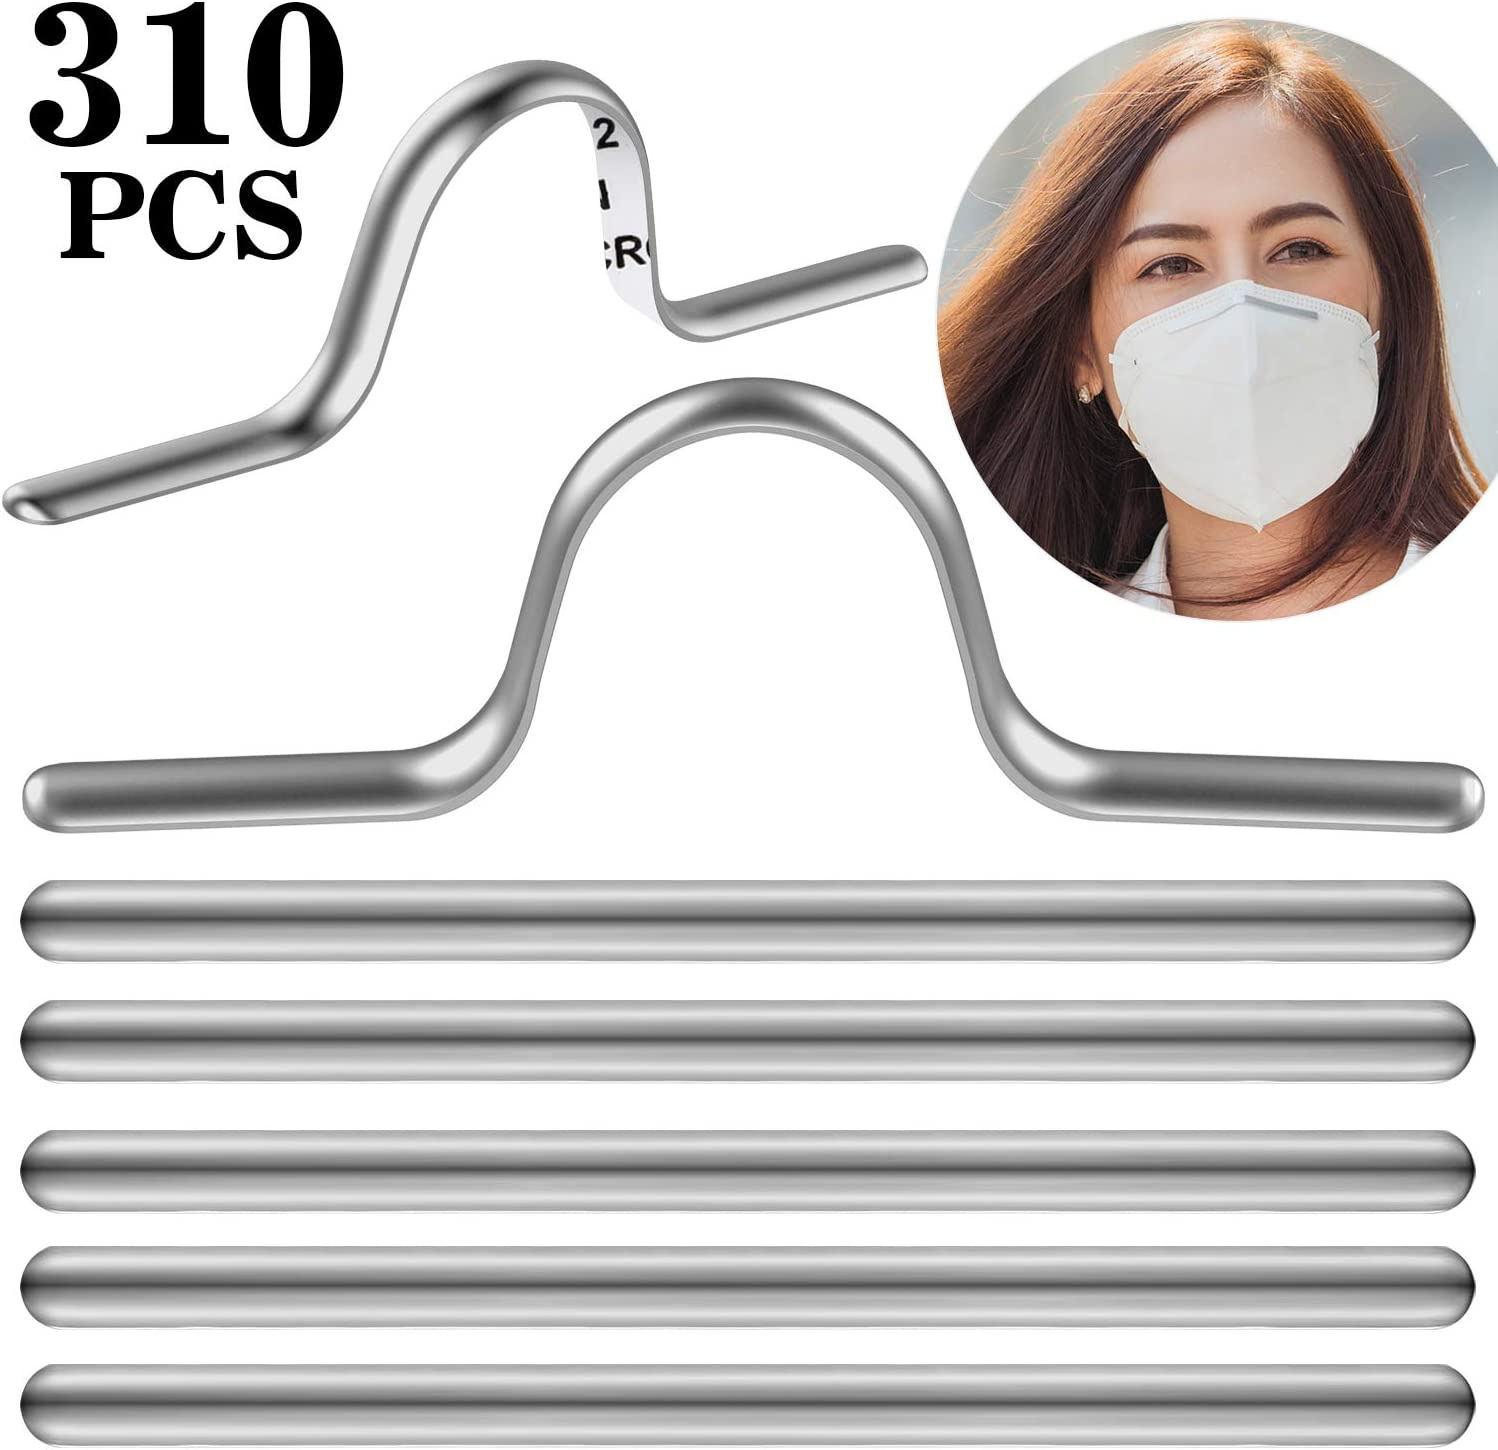 60 85 mm Metal Flat Aluminum Bar Strip Trimming One-Side Sticky for Bridge Band Clip of Nose DIY Crafts Making Accessories Flat Face Cover Aluminum Wire Face Cover Nose Bridge Strip